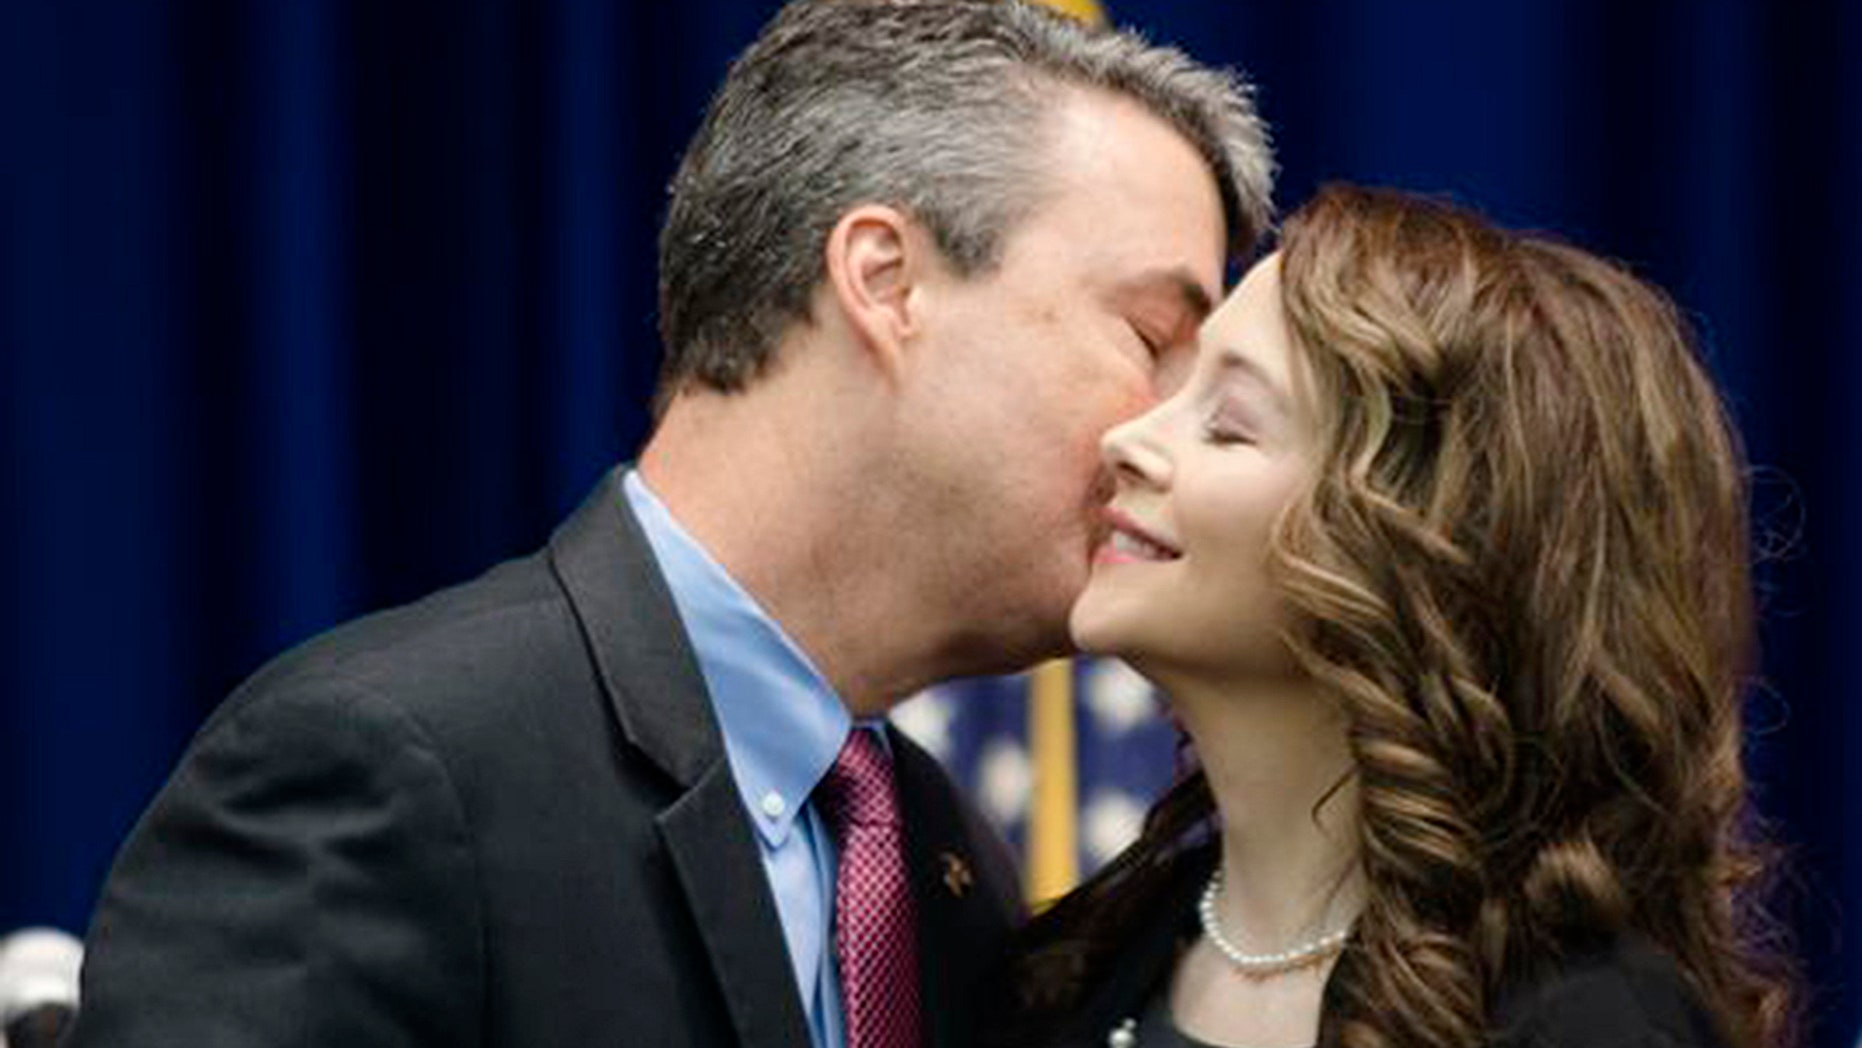 In this Feb. 13, 2017 photo, Alabama Attorney General Steve Marshall kisses his wife, Bridgette, after being sworn into office in Montgomery, Ala.